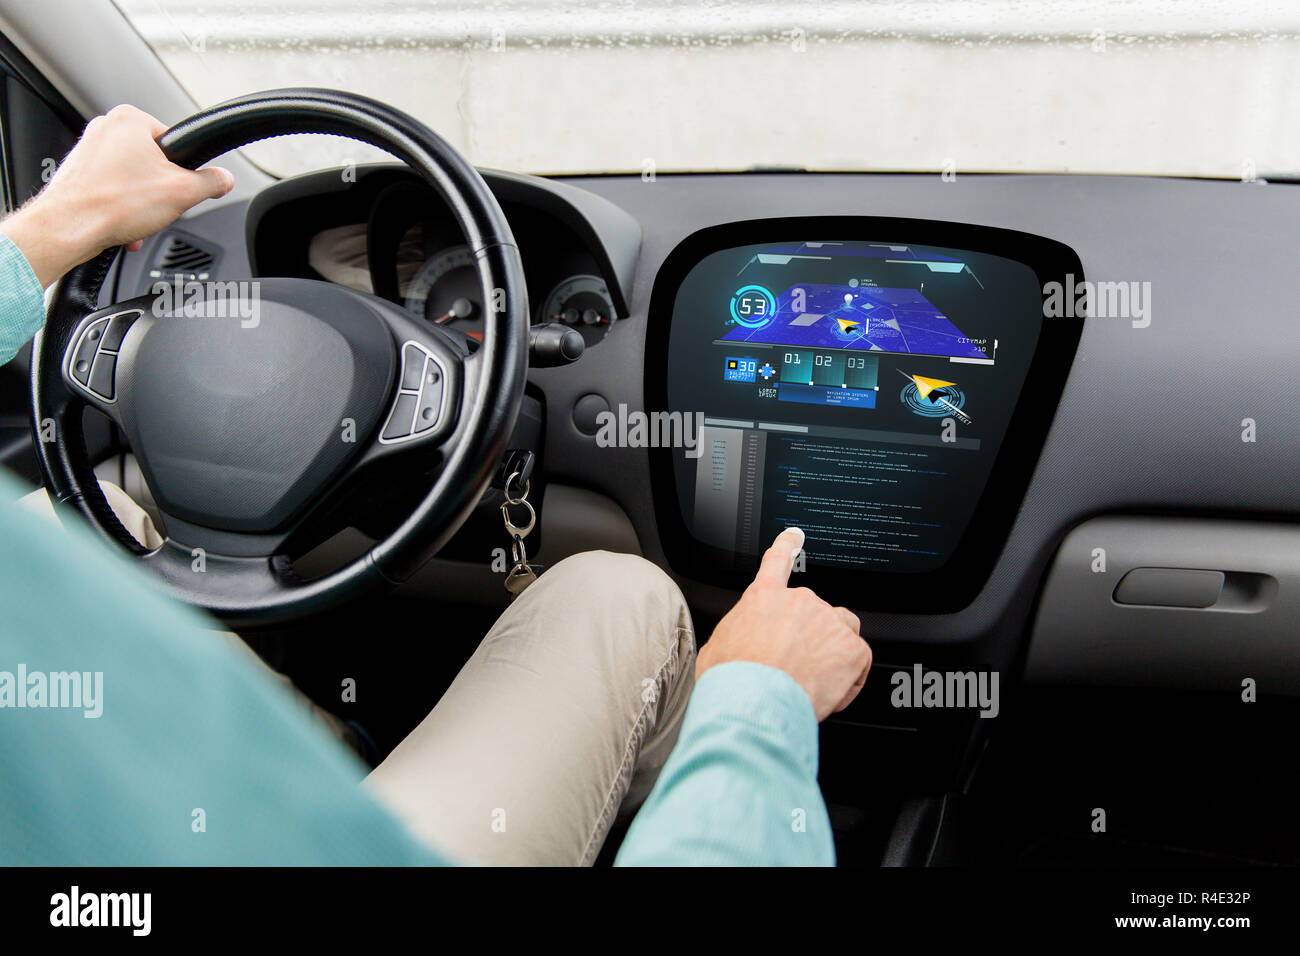 close up of man driving car with navigation system - Stock Image